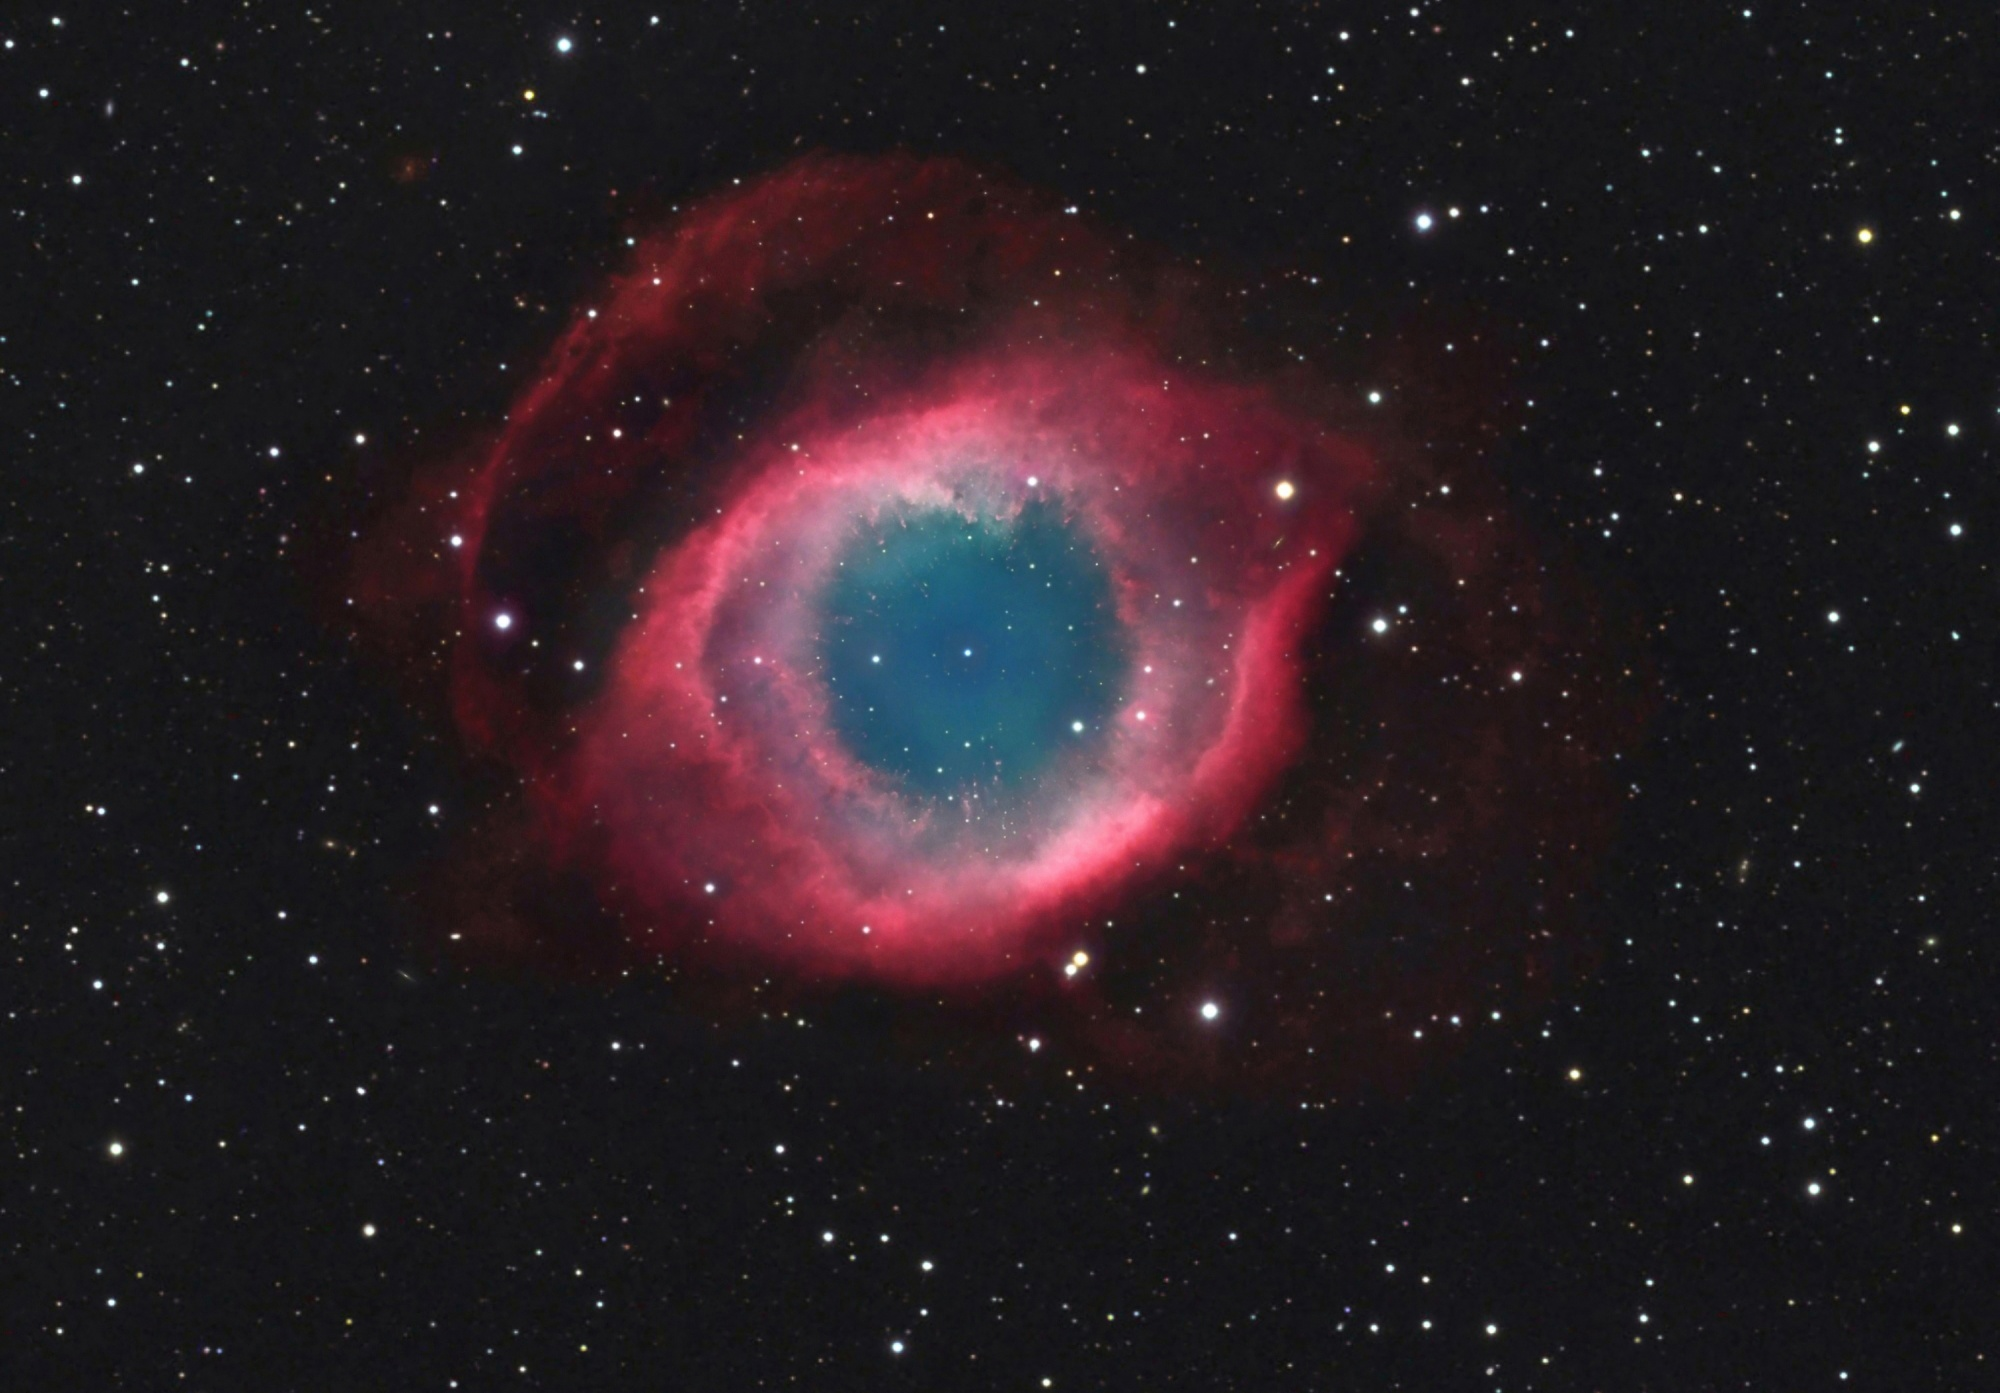 APOD: 2011 January 8 - NGC 7293: The Helix Nebula